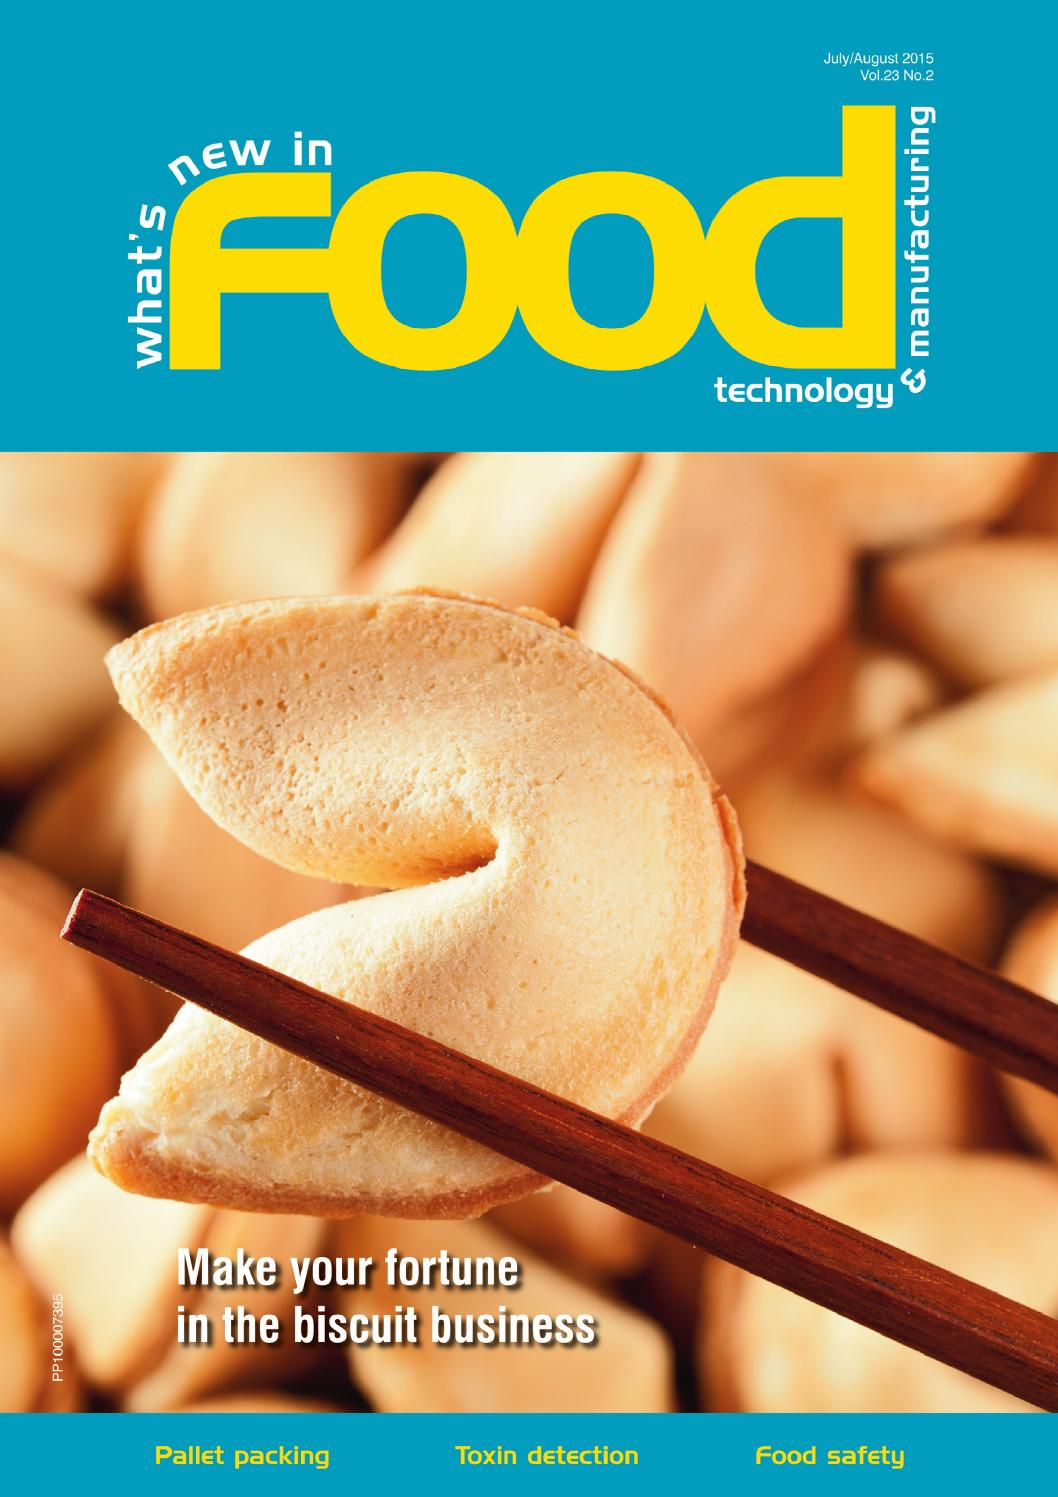 What S New In Food Technology Jul Aug 2015 By Westwick Farrow Media